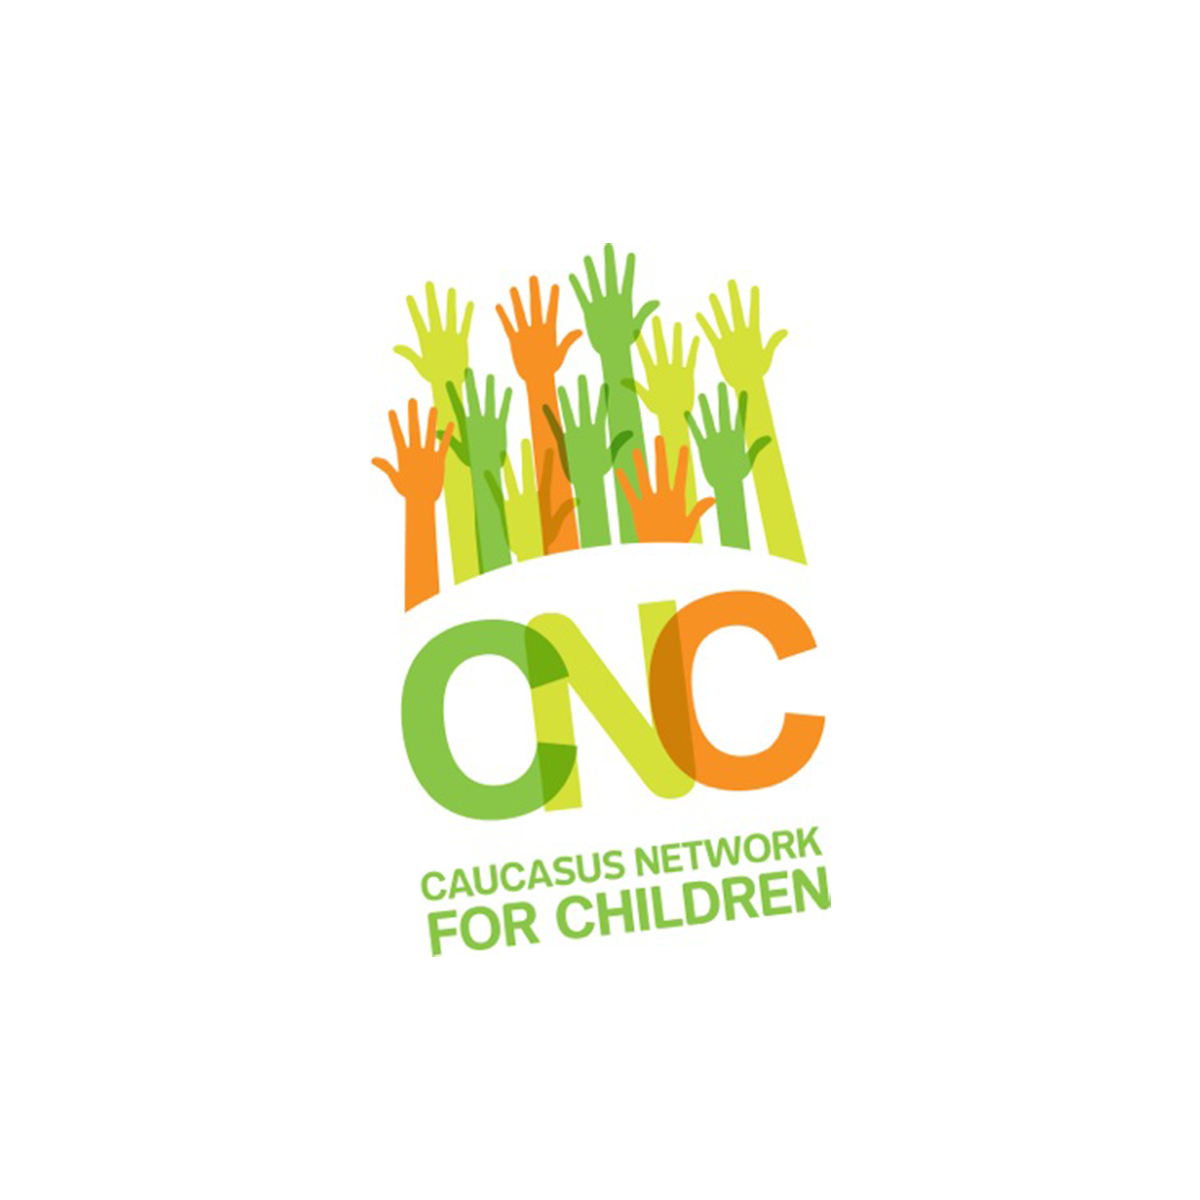 Logo Caucasus Network for Children